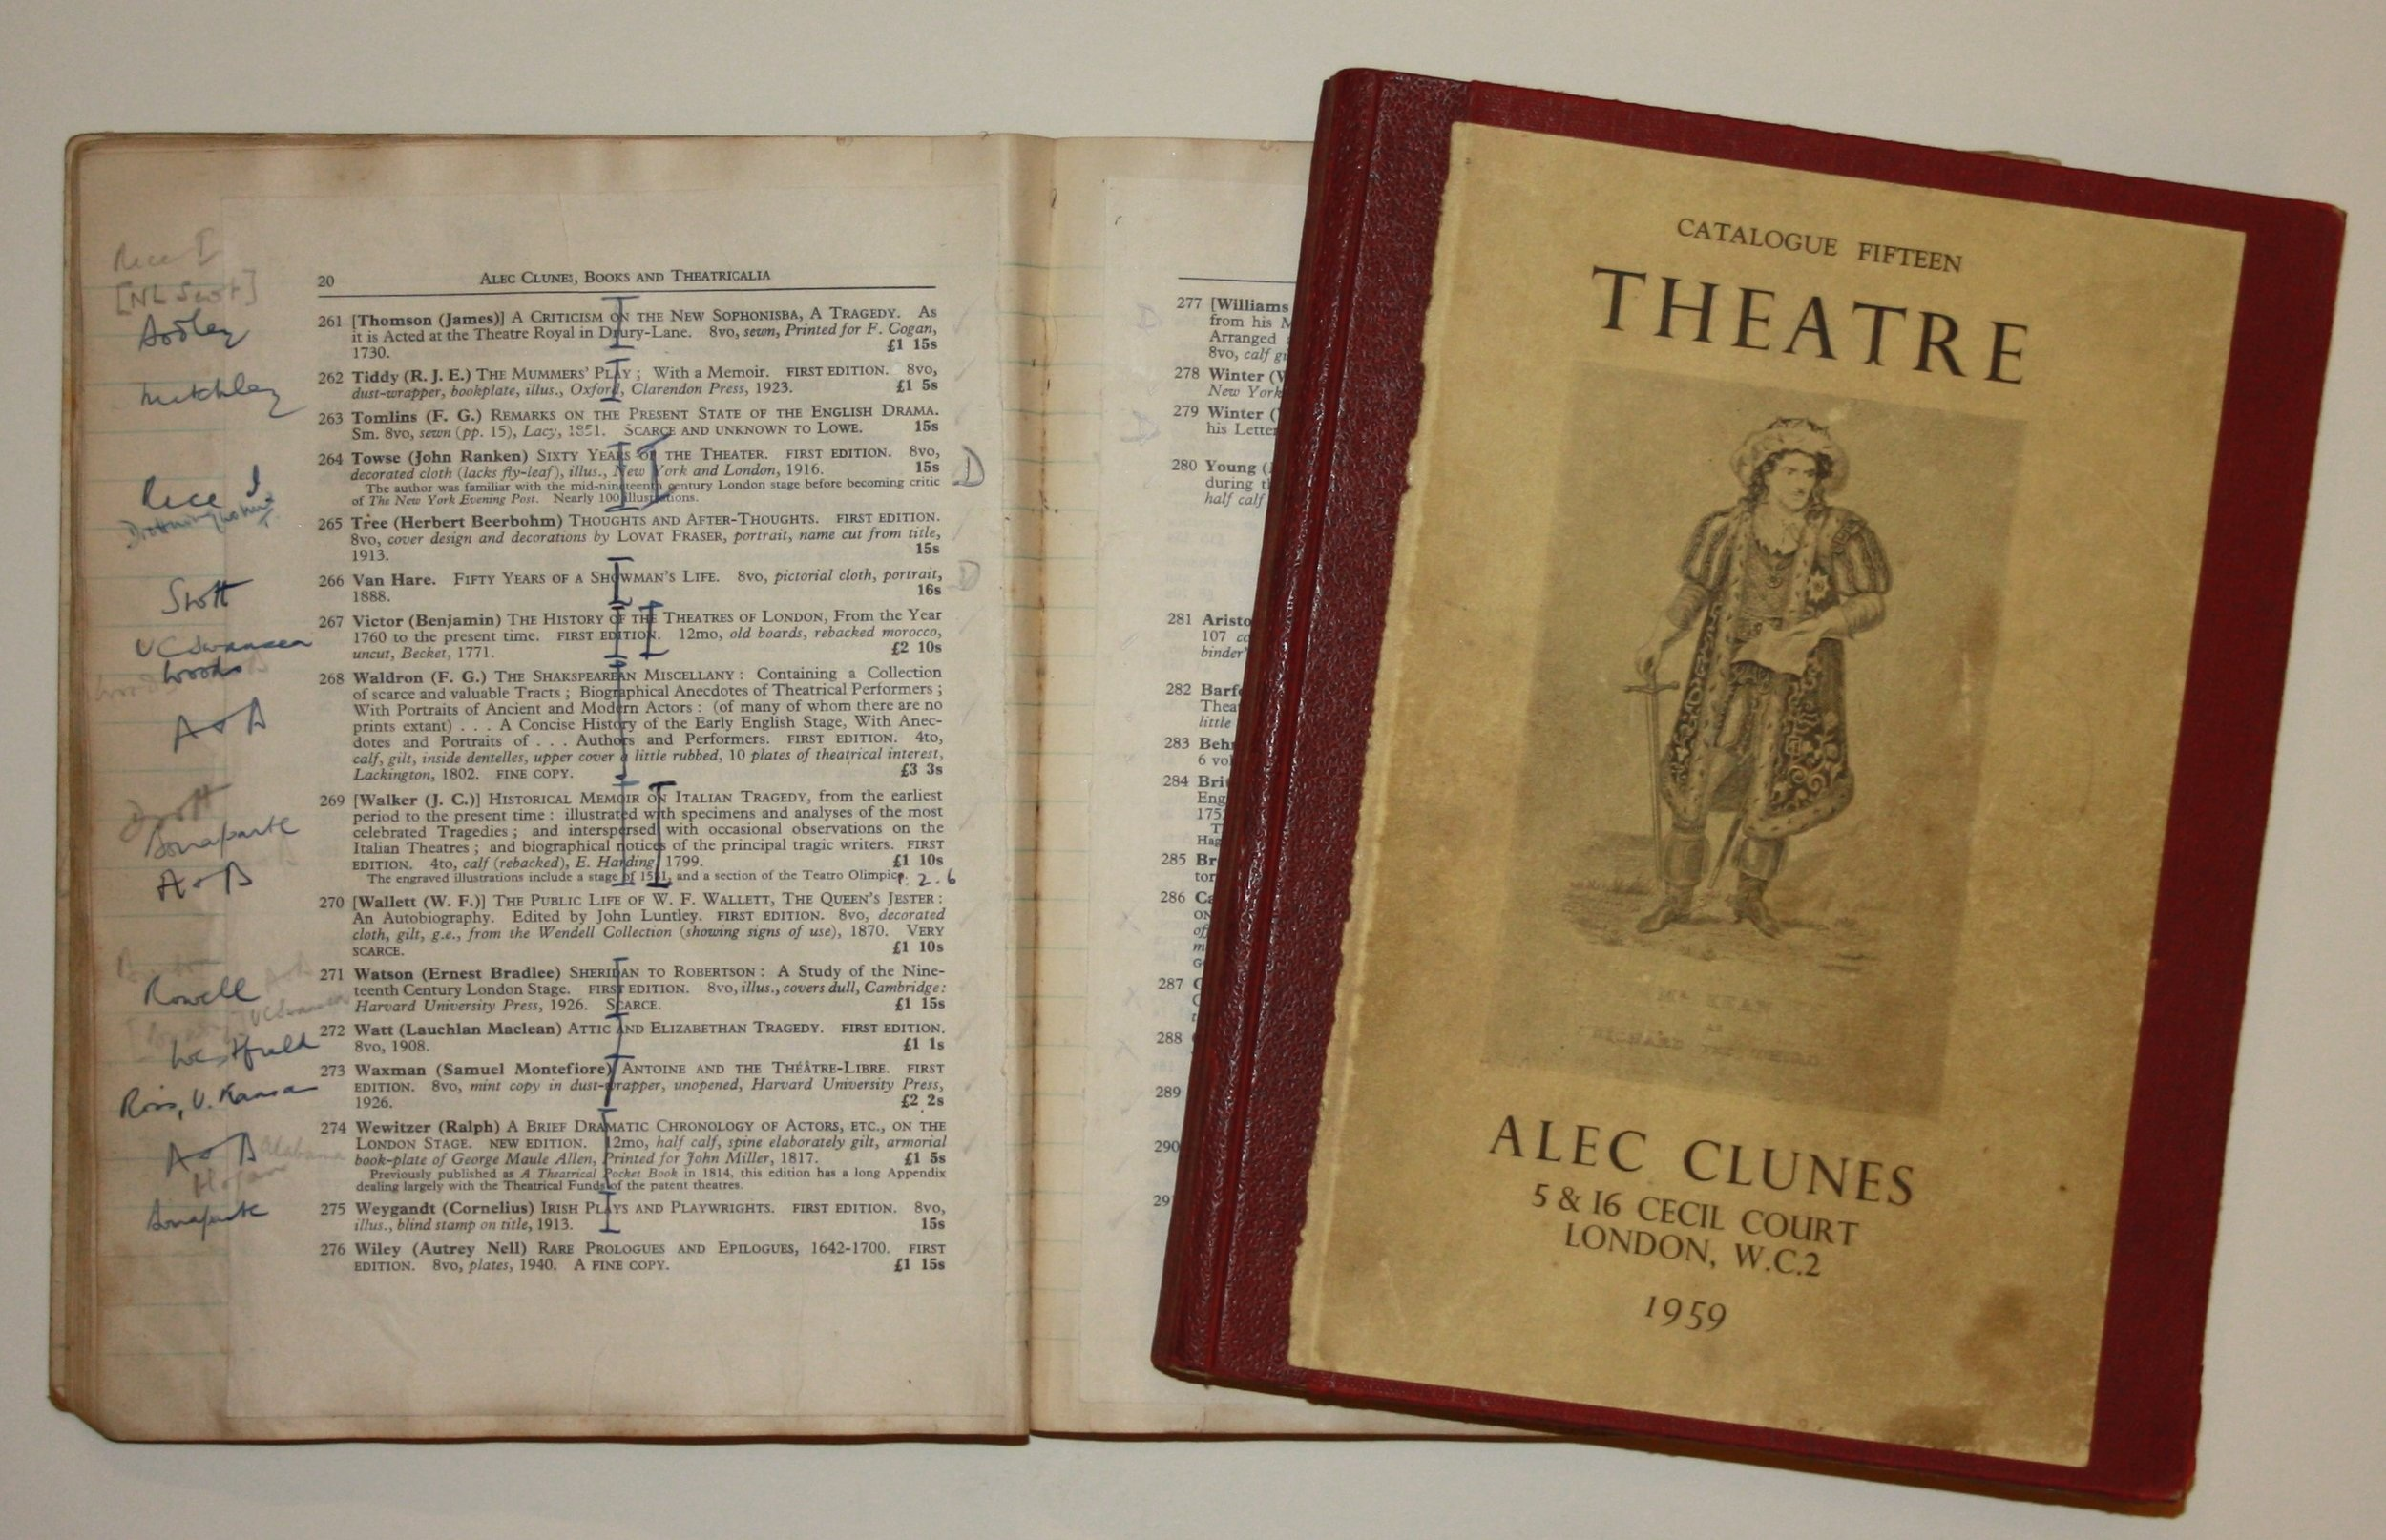 Master copies of catalogues issued by actor and bookseller Alec Clunes (father of Martin), annotated to show sales